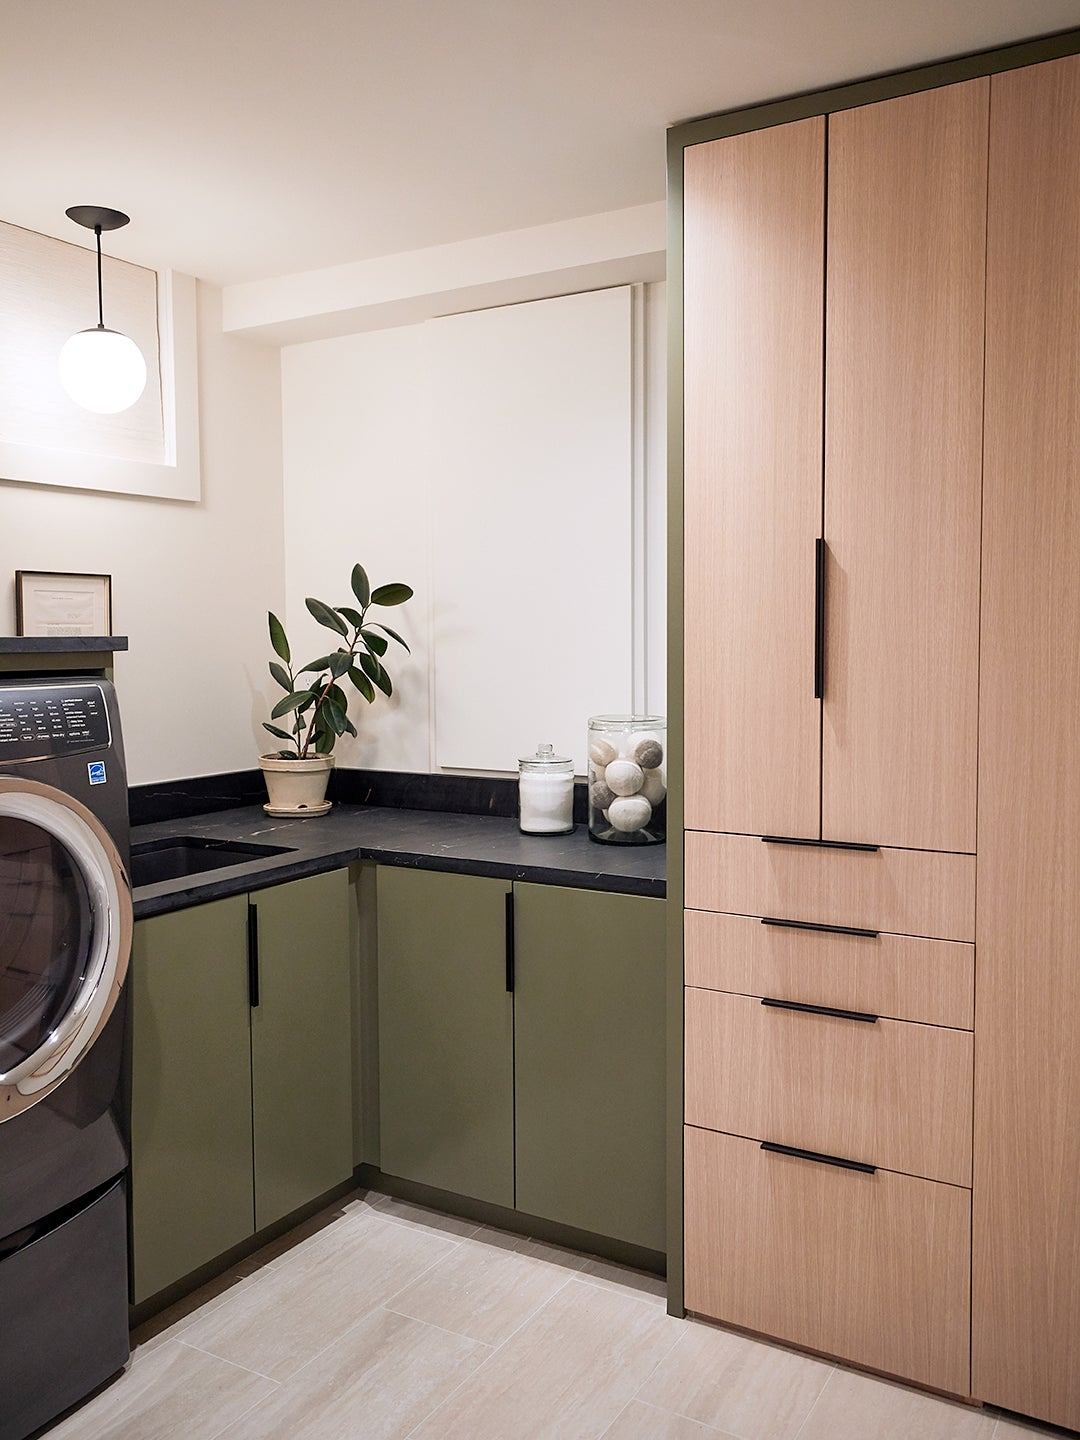 Renovated laundry room with cabinets